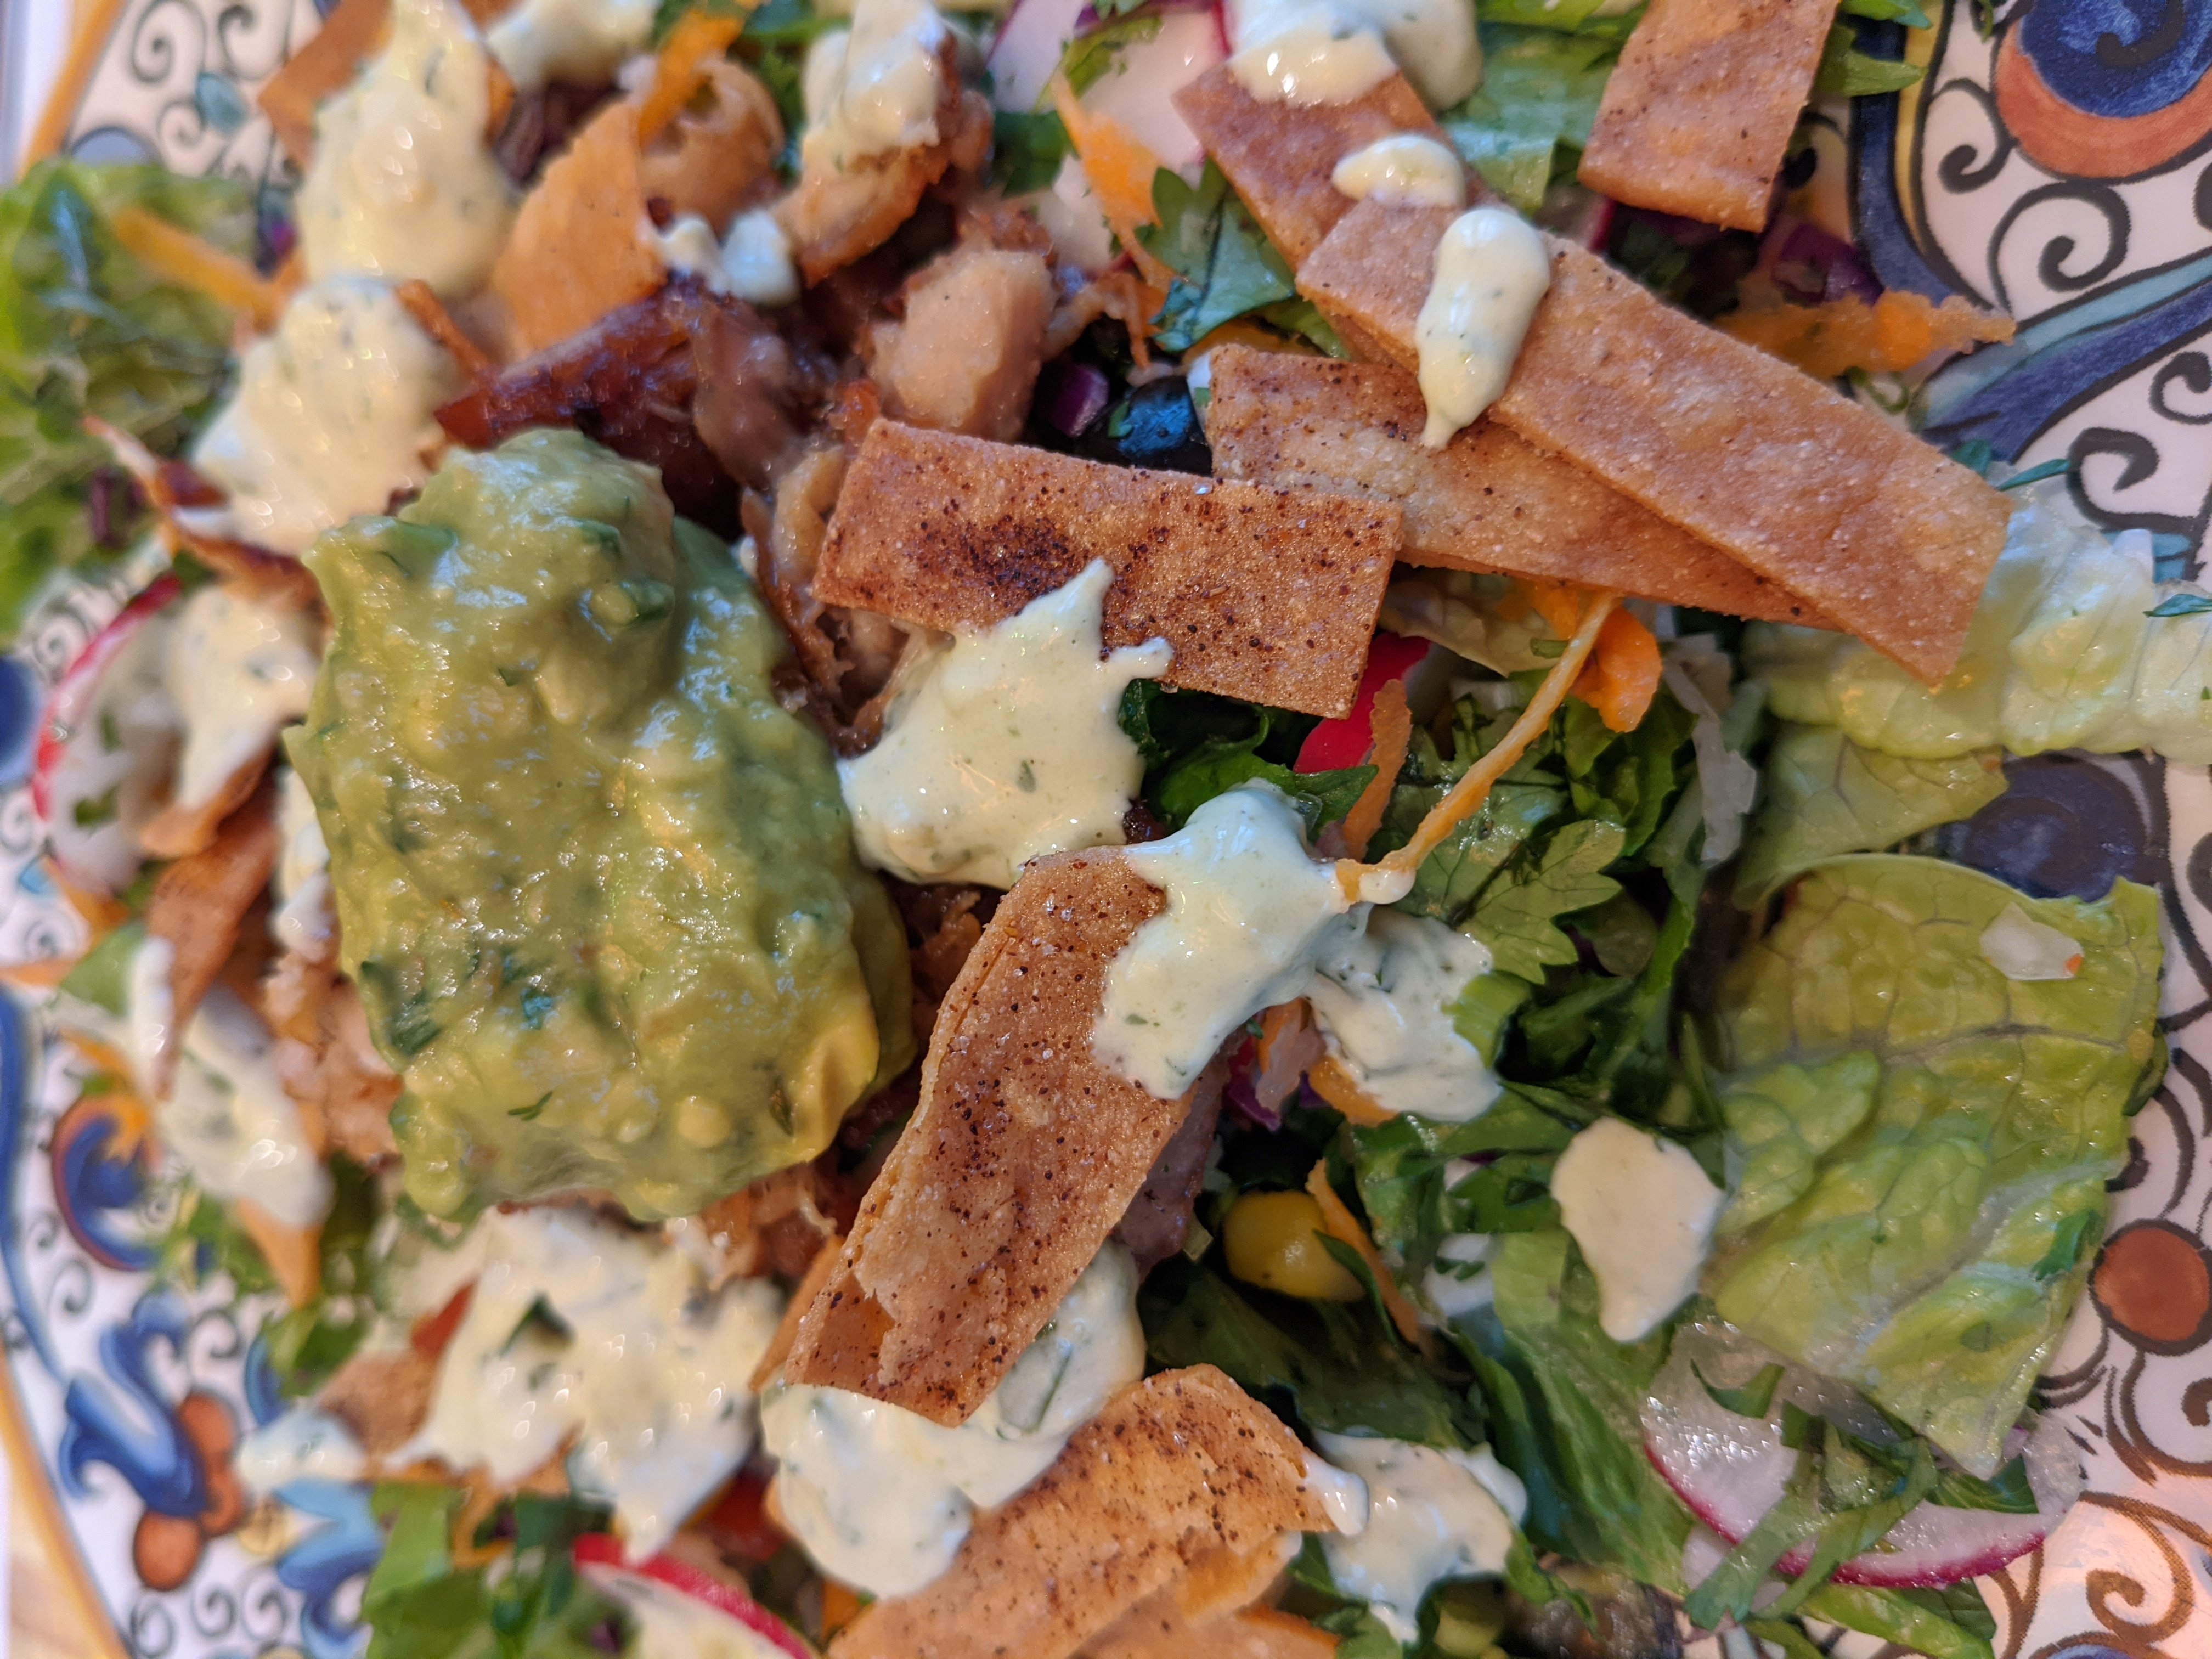 Ranch Salad Dressing with Avocado and Cilantro on a Taco Salad with Carnitas (optional) recipe image